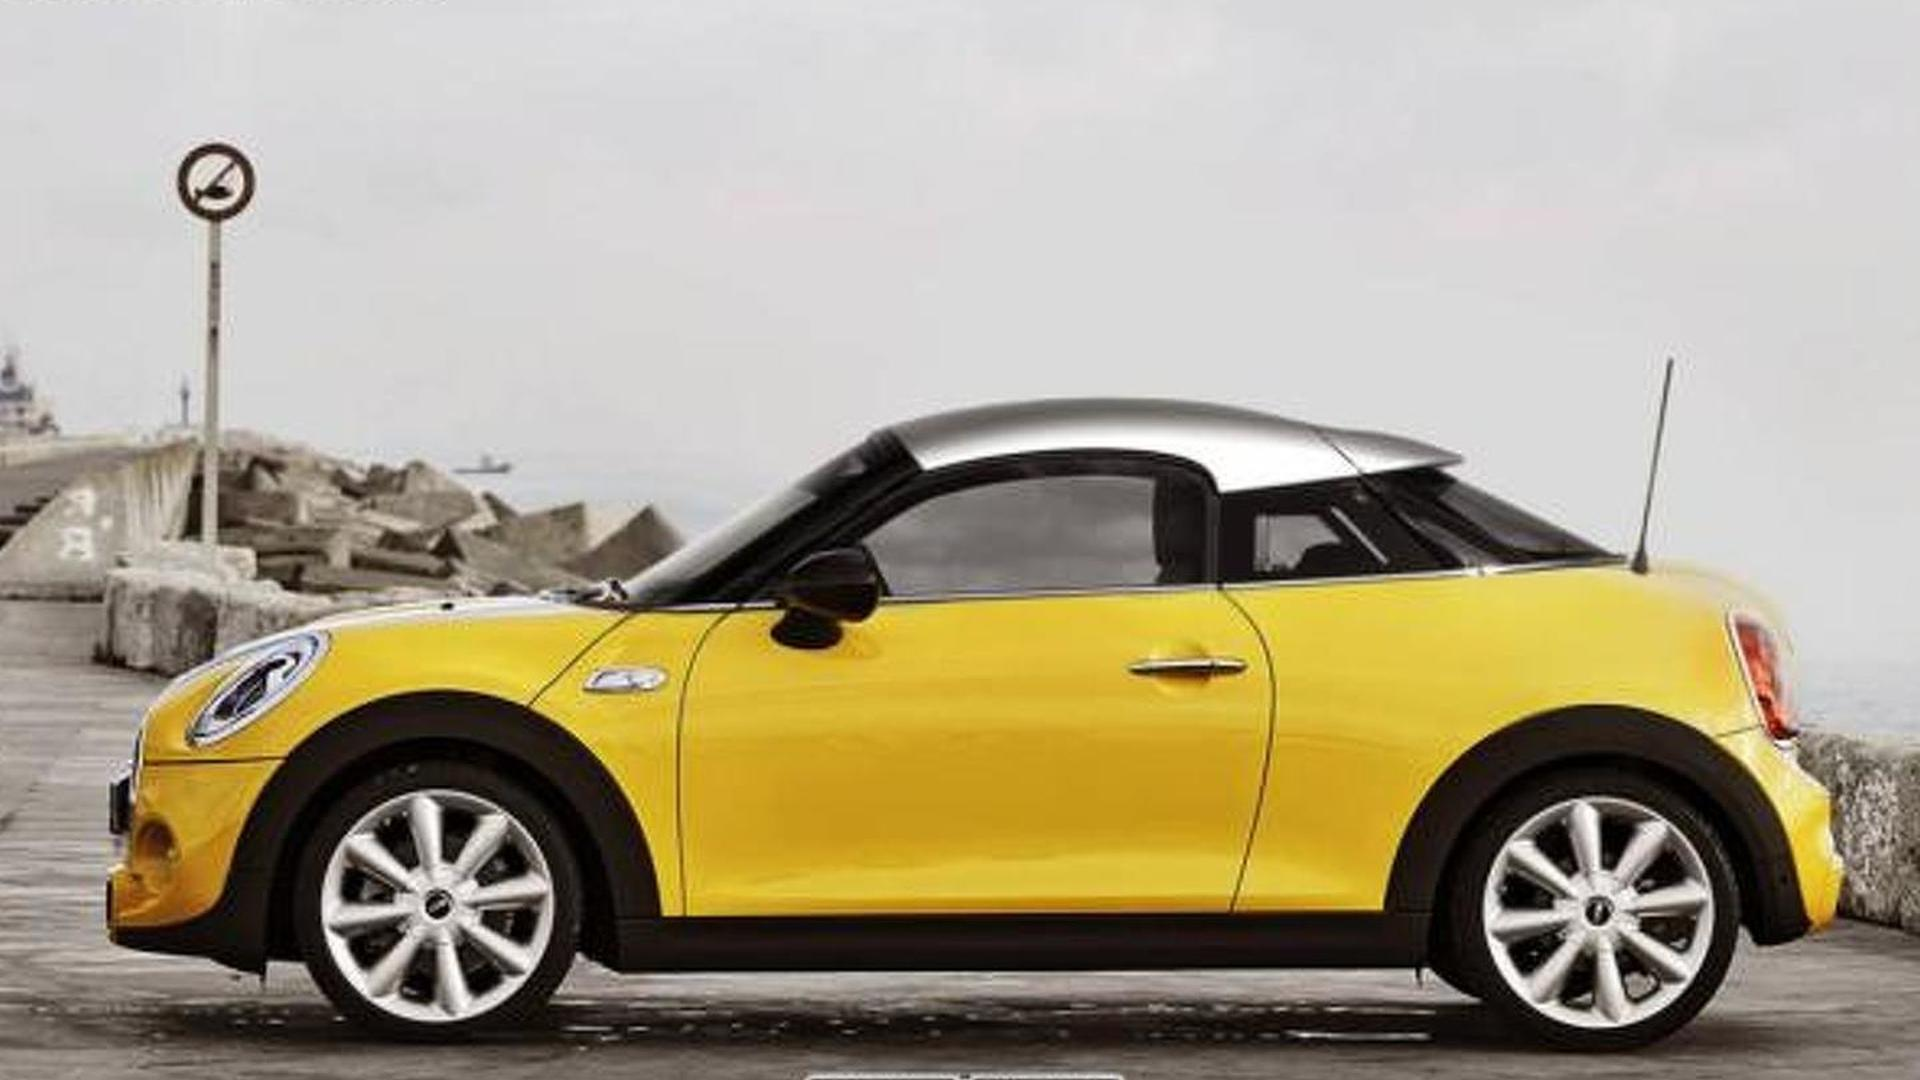 20 MINI rendered as Coupe, Roadster & Convertible